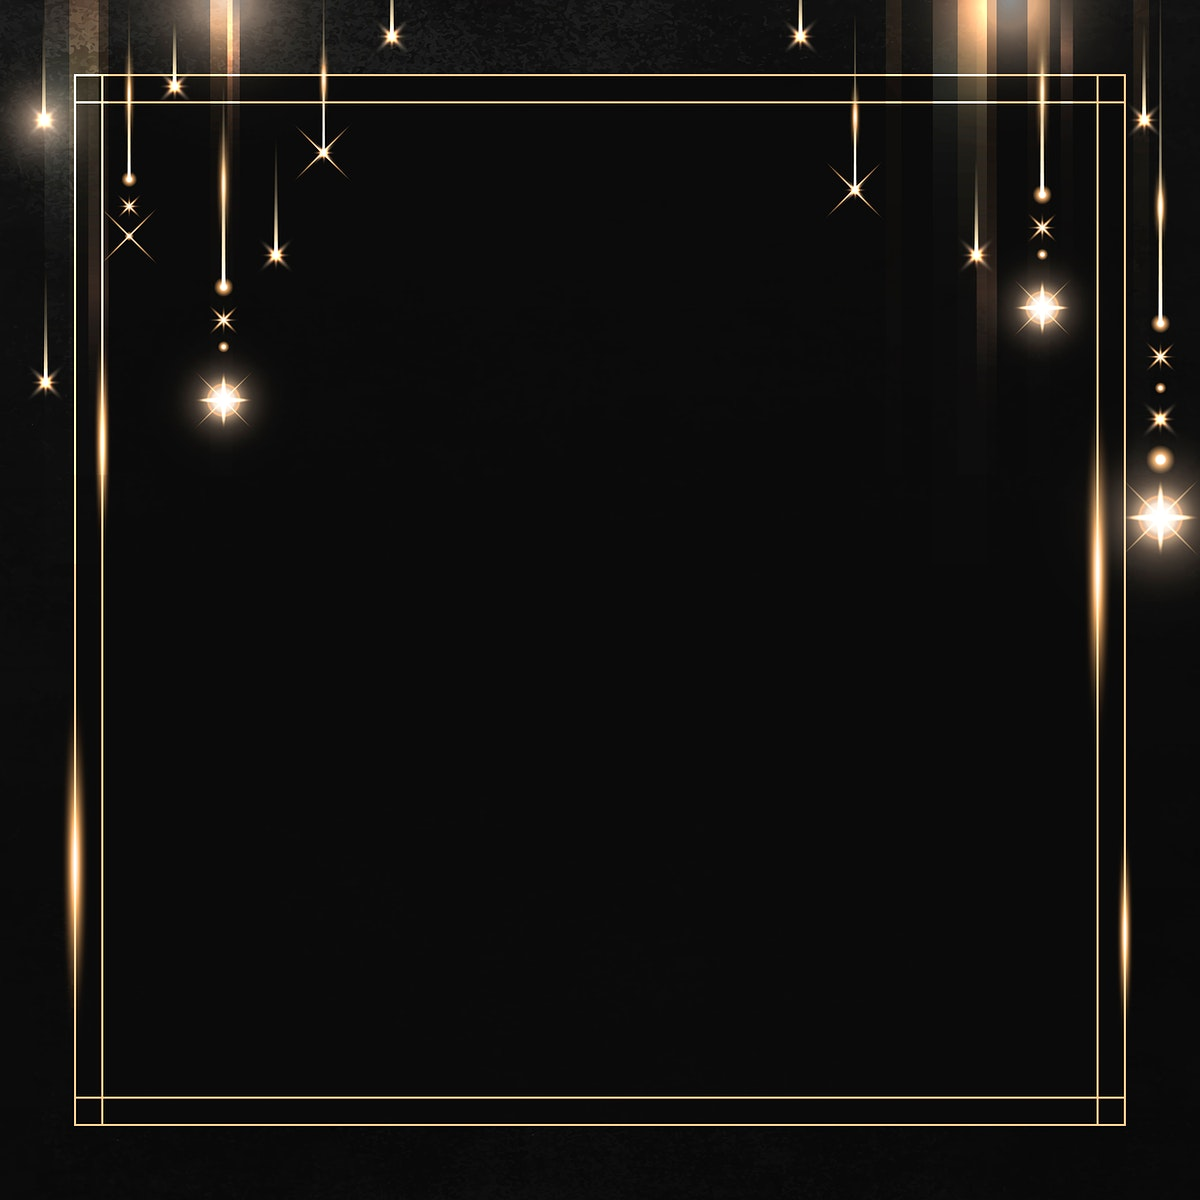 Square gold frame with sparkle patterned on black background vector